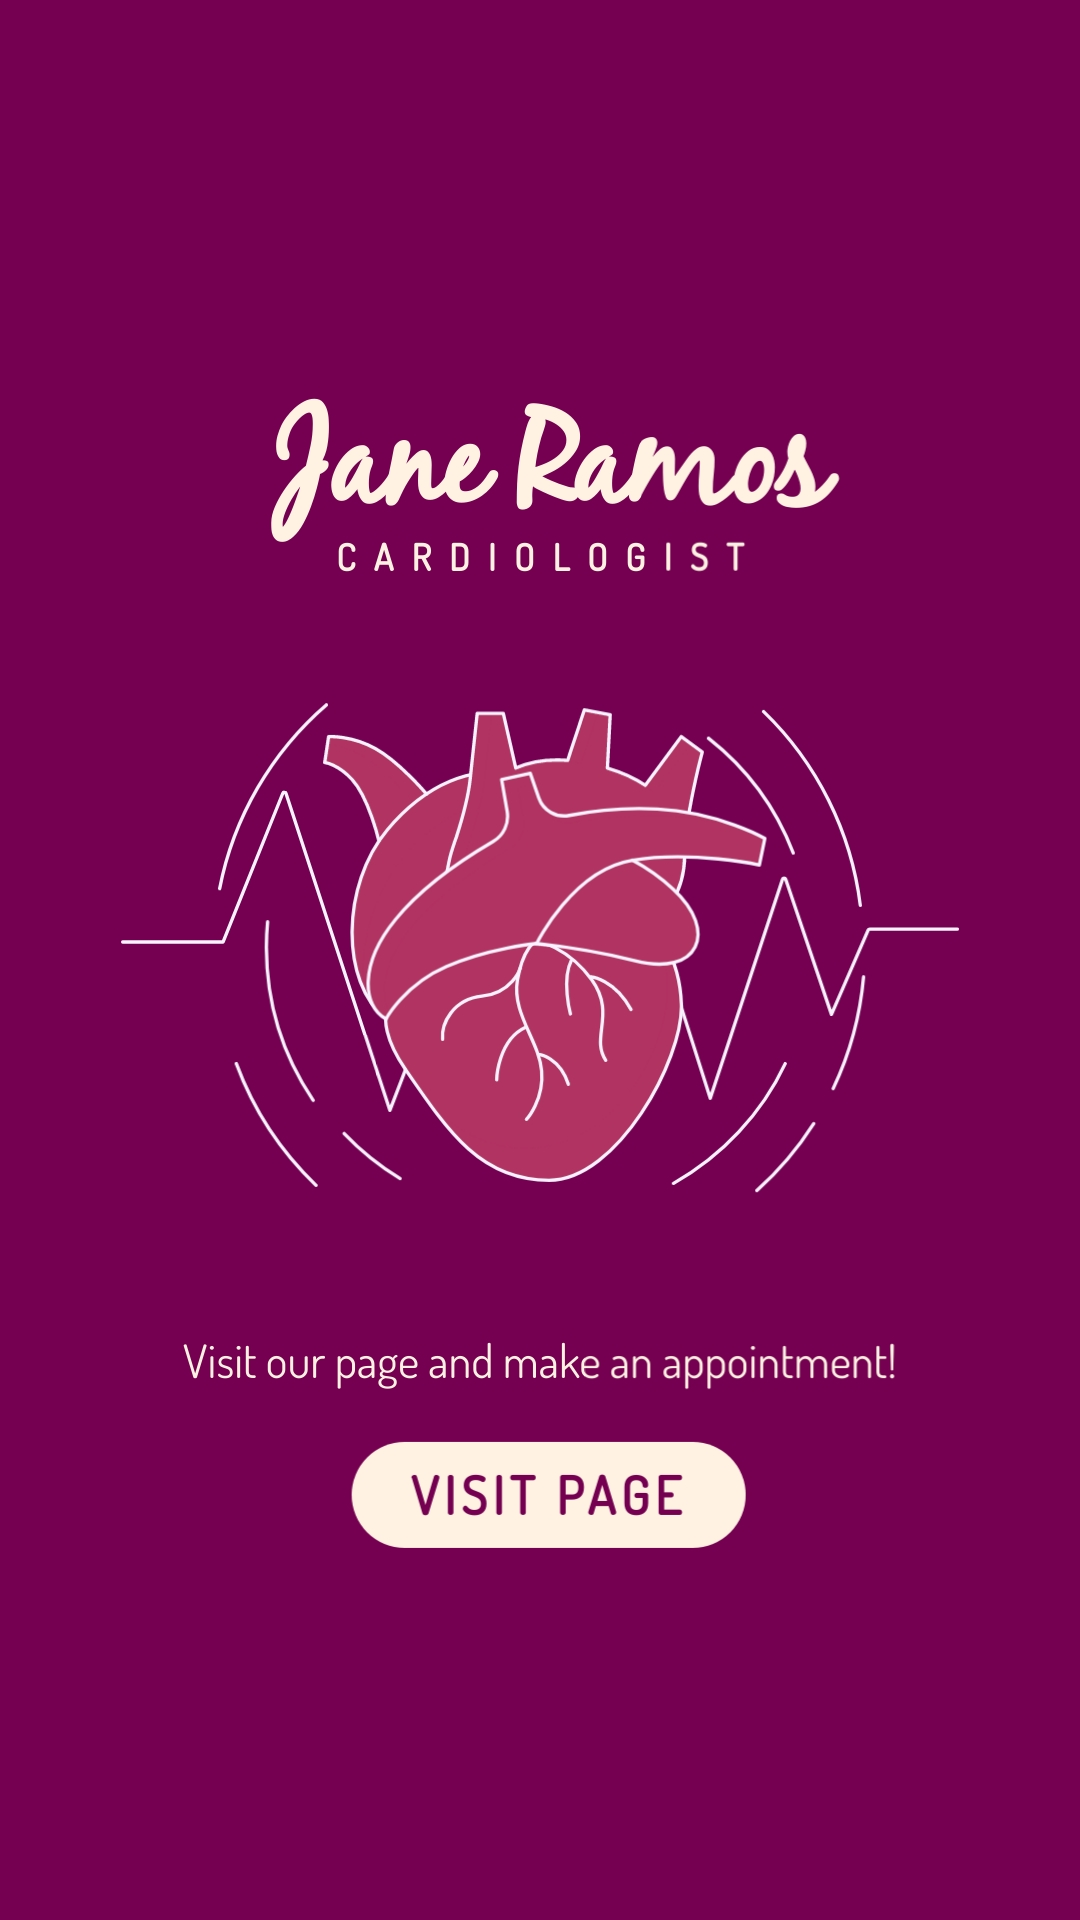 Cardiologist Animated Vertical Template